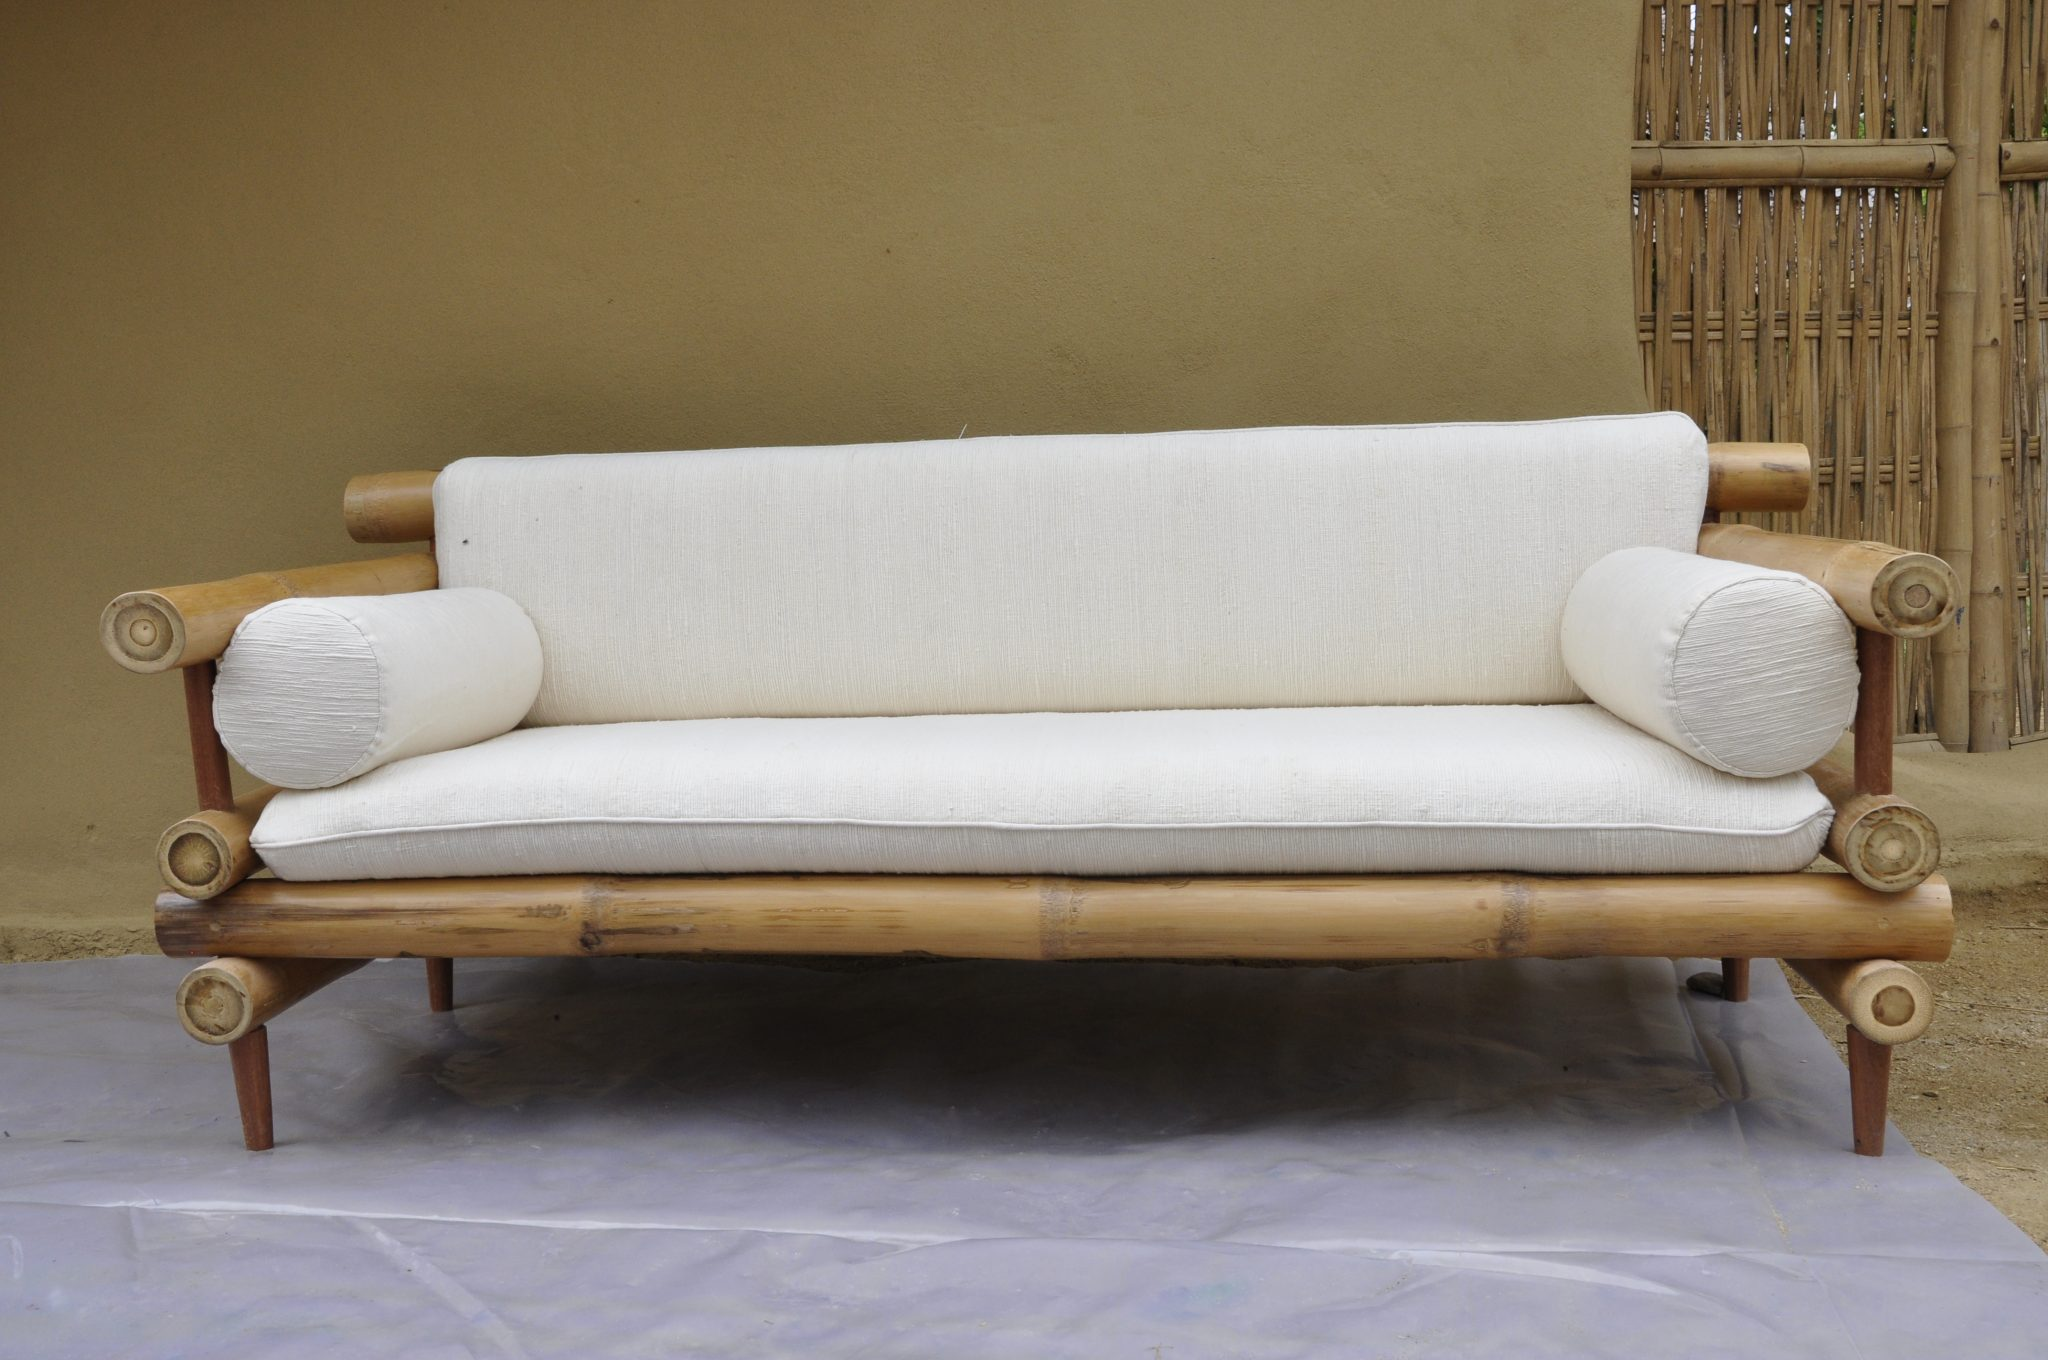 Bamboo Sofa 2 Arms Size 200x75x60cm Bamboo Earth Architecture Chiangmai Life Construction